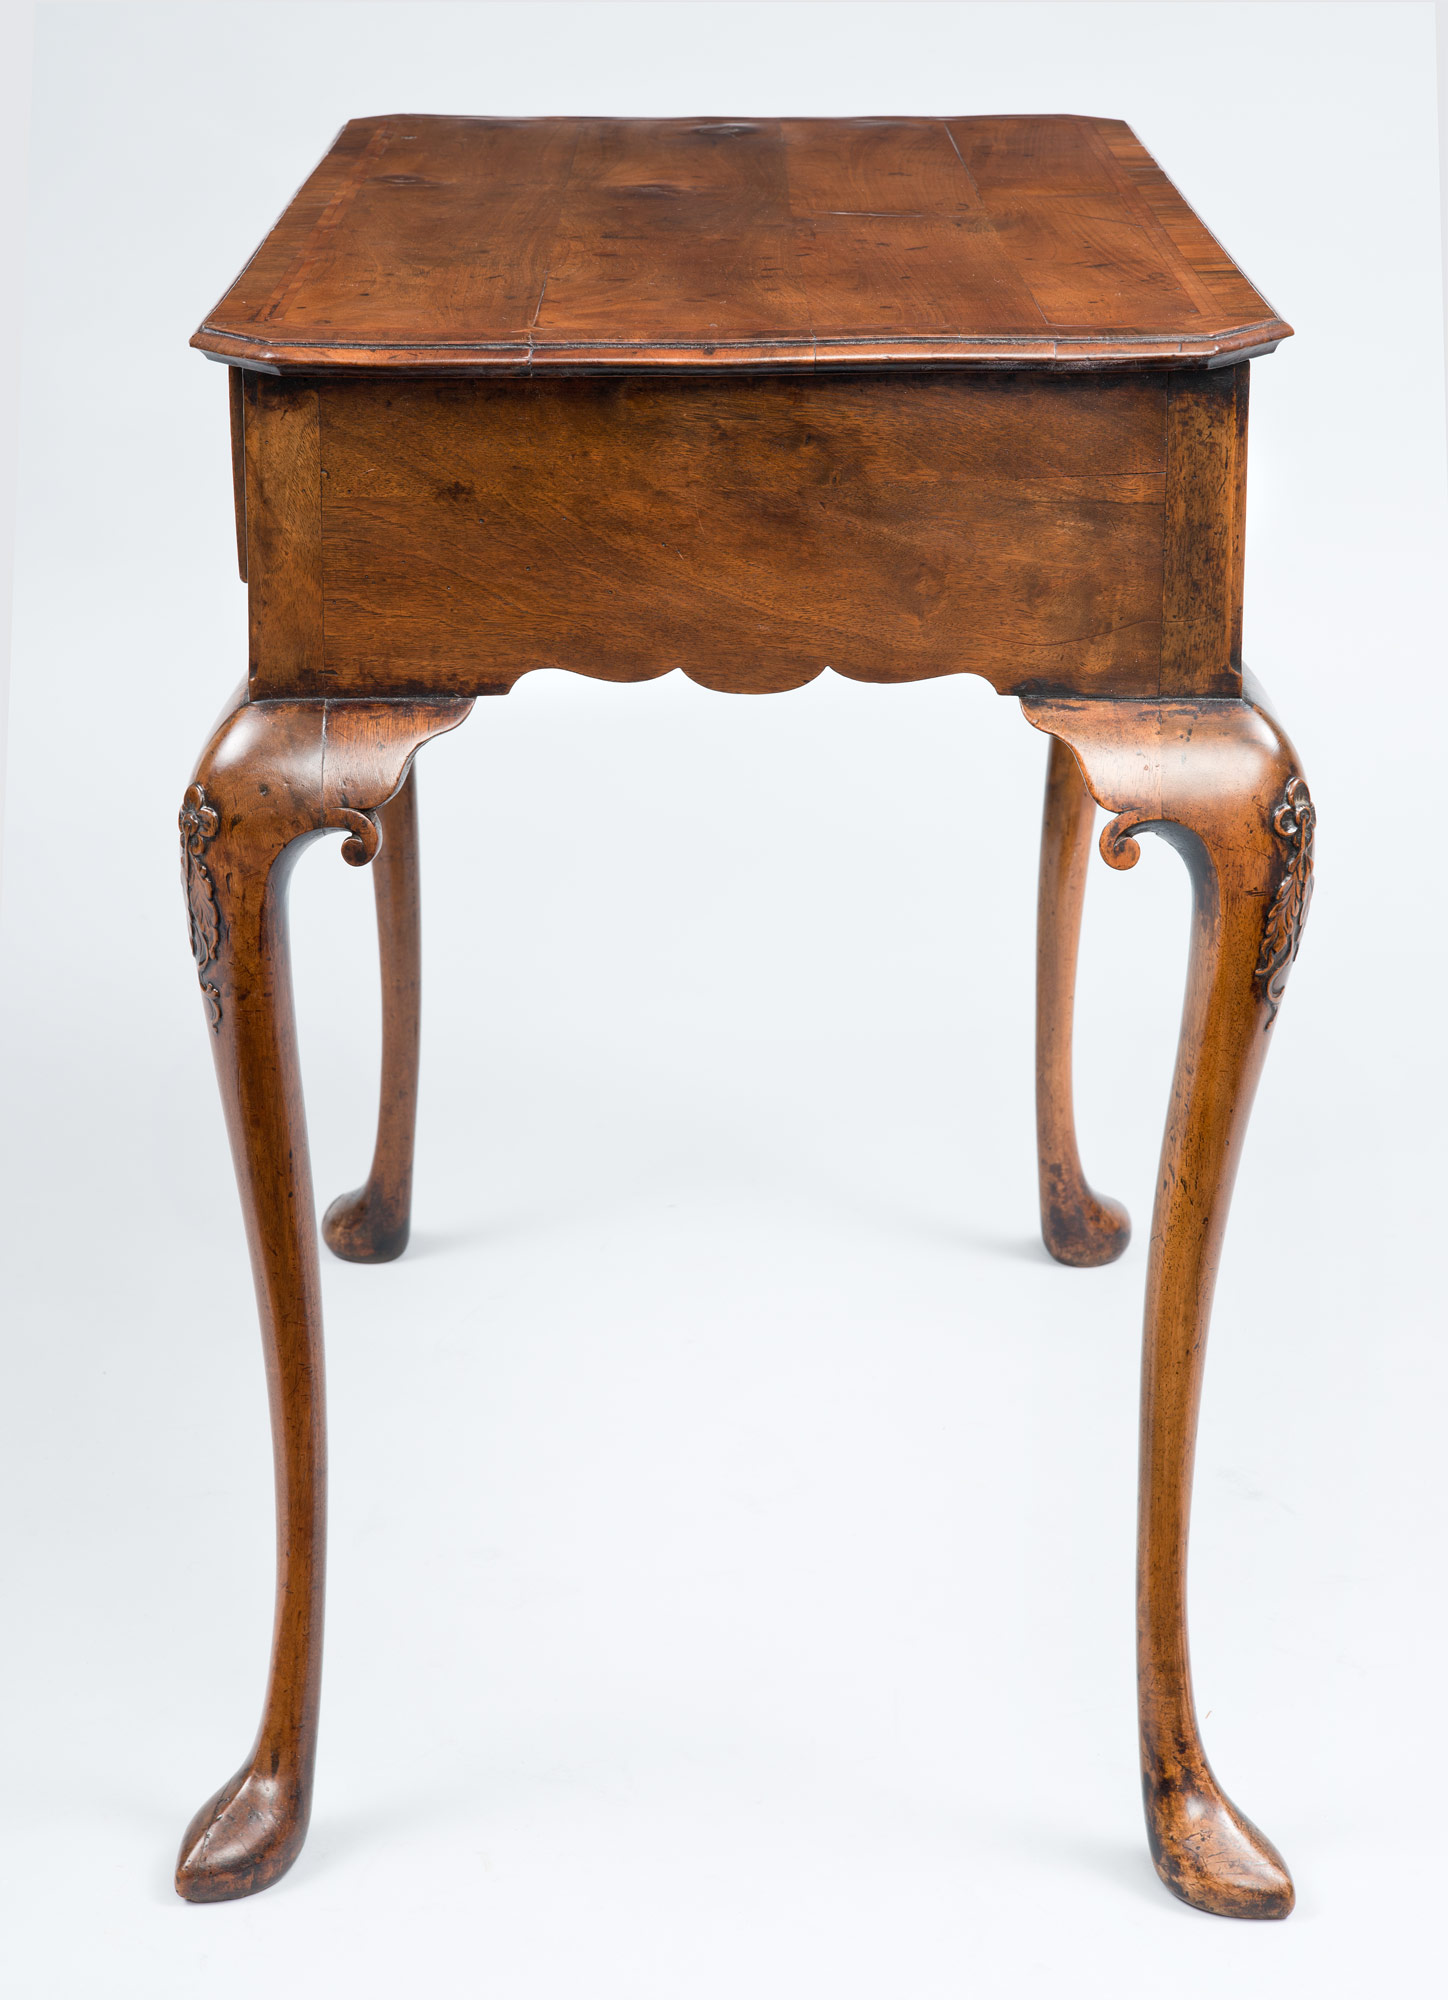 Antique Side Tables | Queen Anne Walnut Antique Side Table | 1448 x 2000 jpeg 309kB